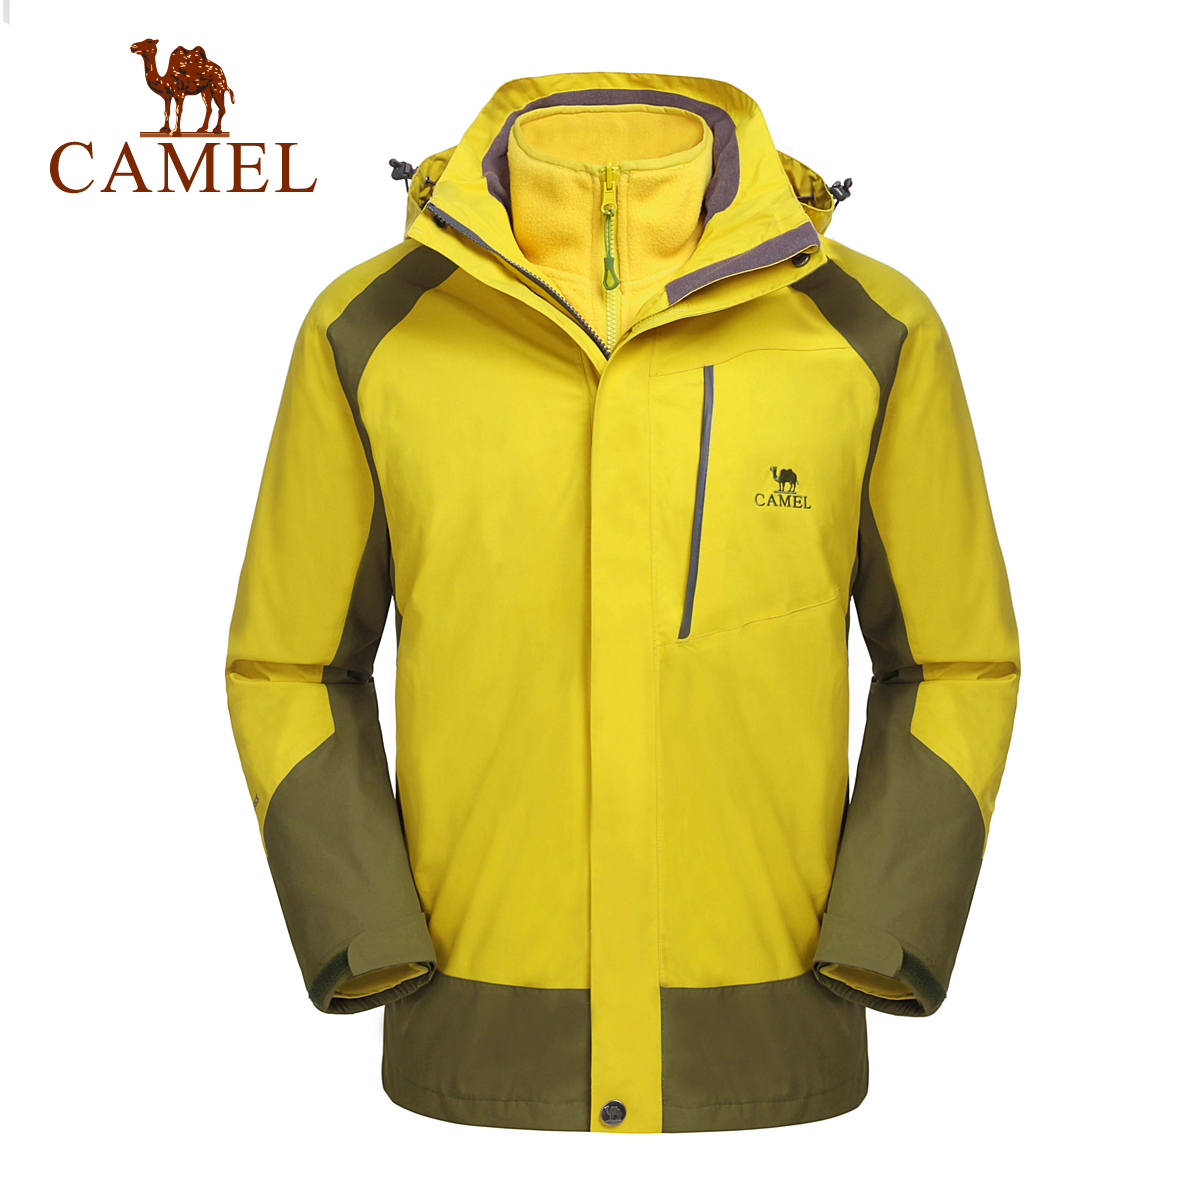 Camel for outdoor Men 2014 hooded outdoor font b jacket b font windproof thermal a4w279077 outdoor